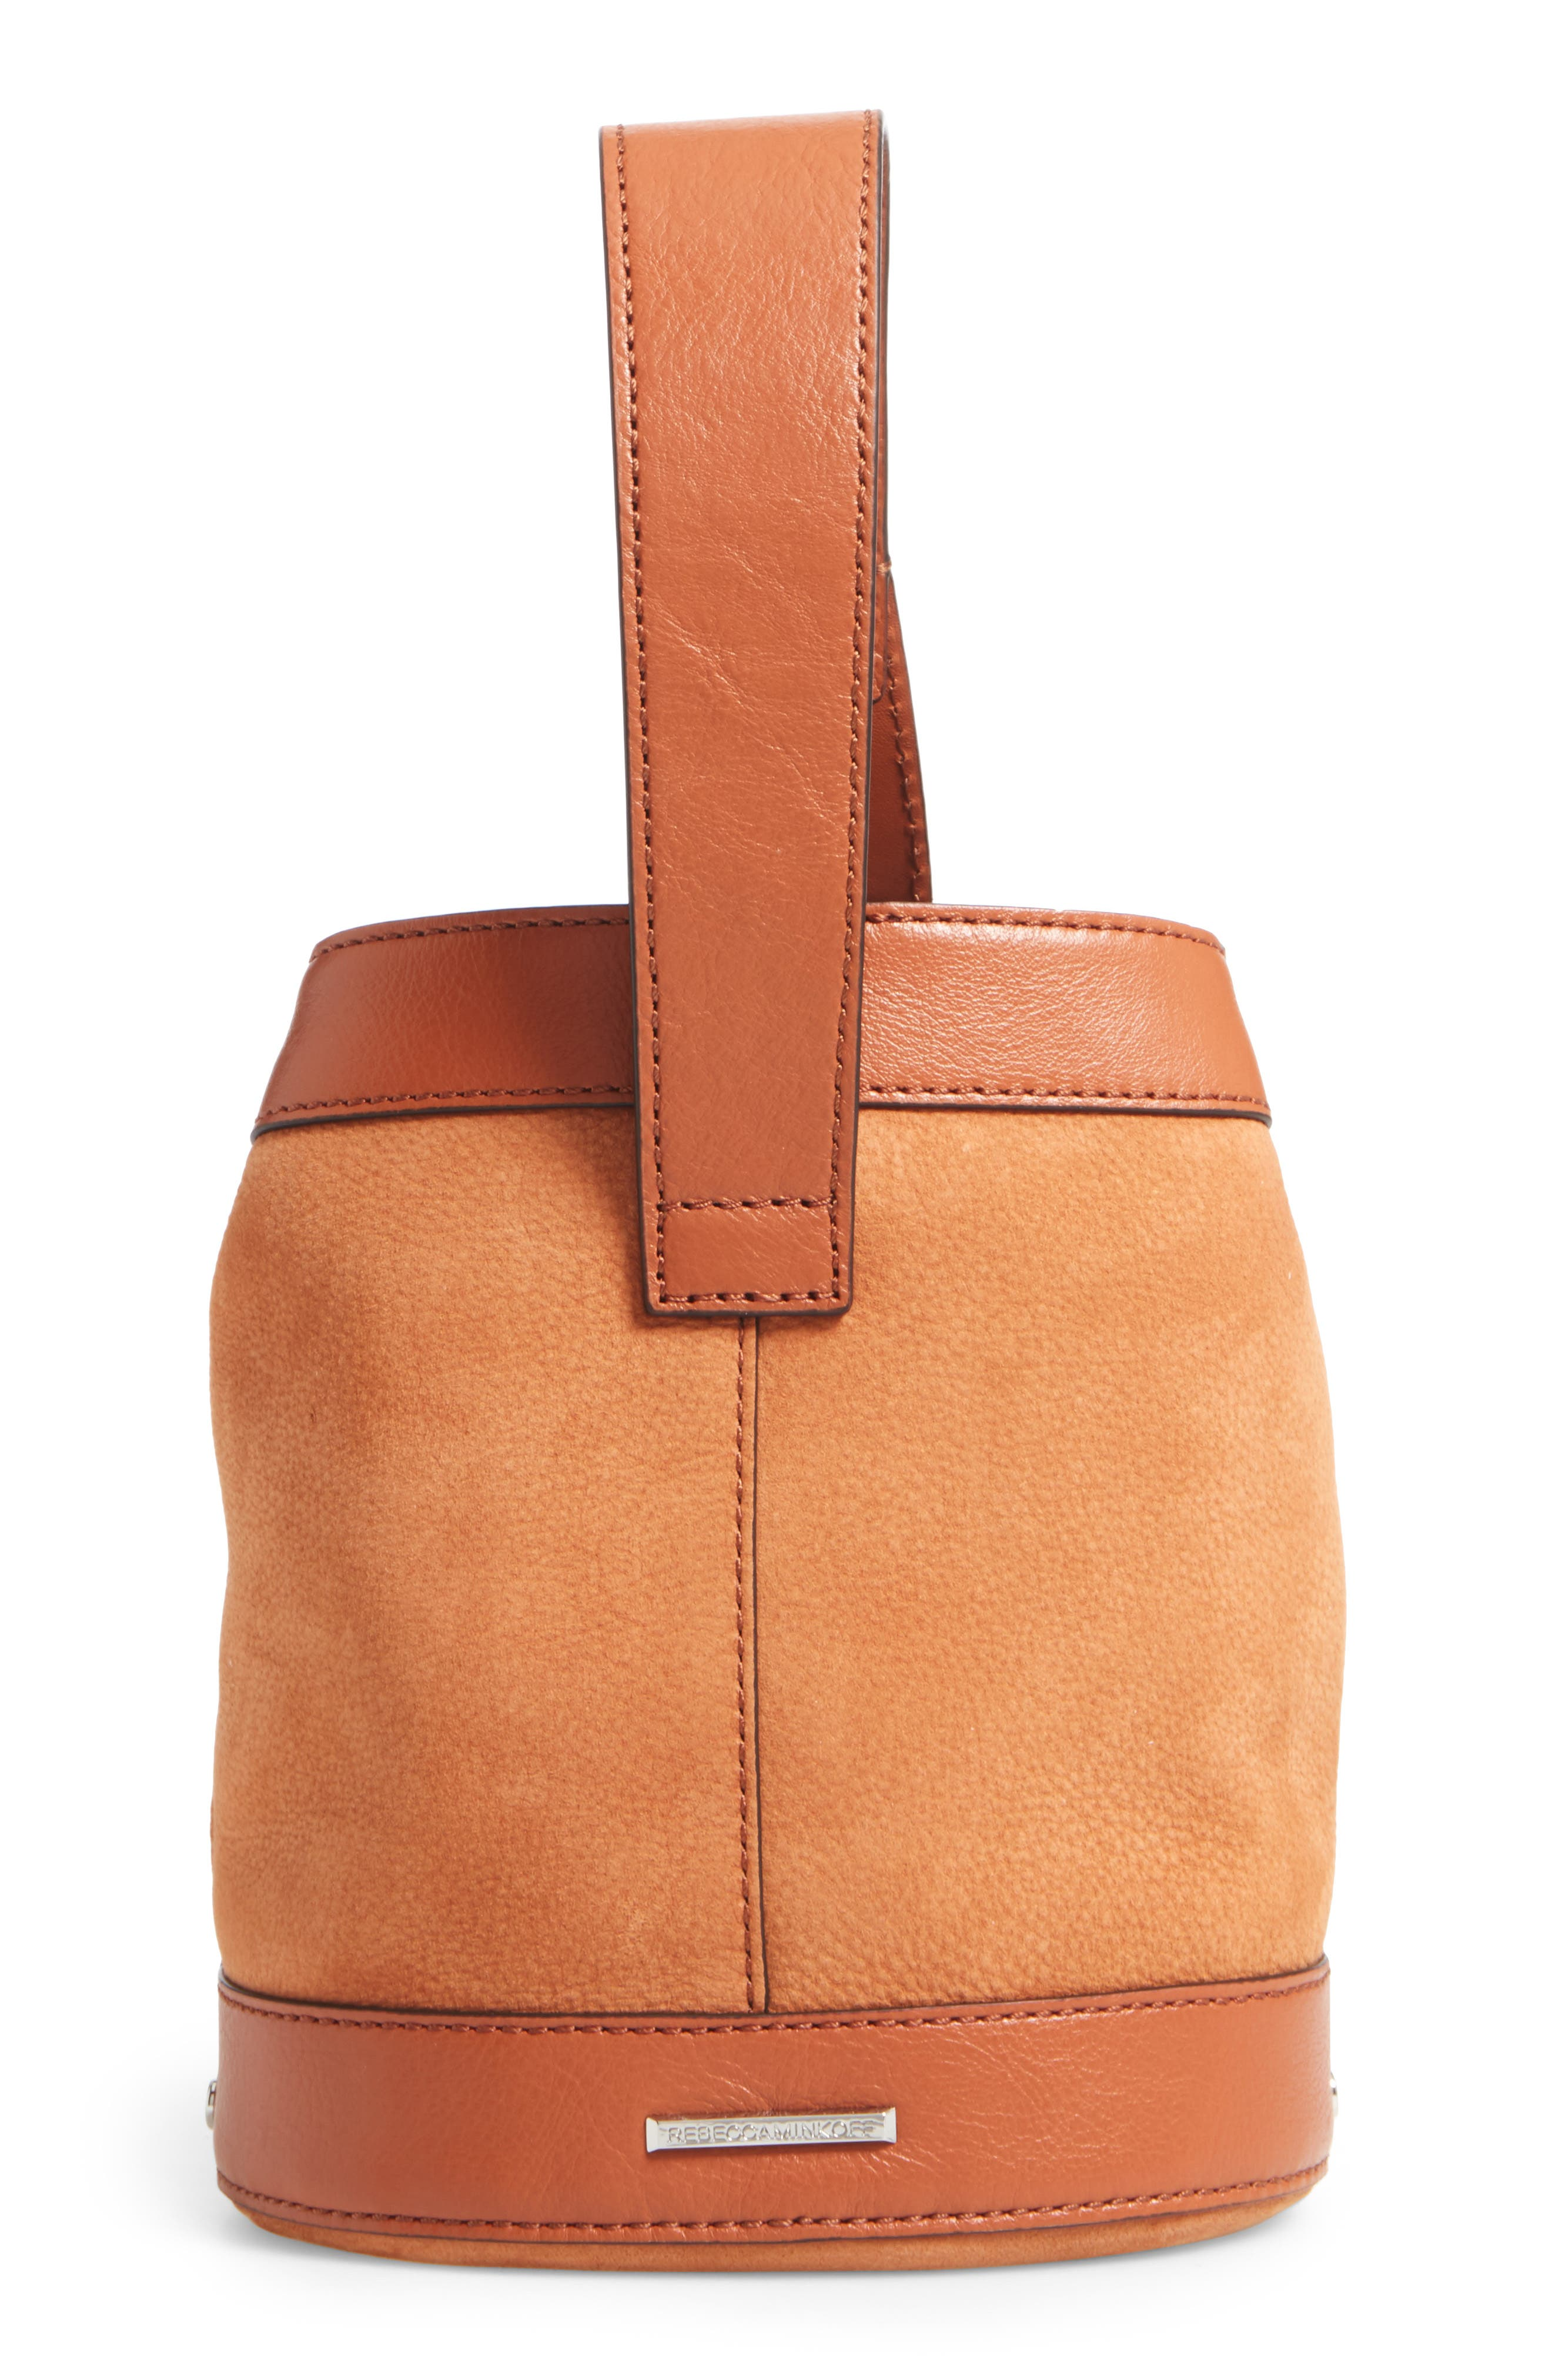 Mini Mission Leather Bucket Bag,                             Alternate thumbnail 4, color,                             Almond